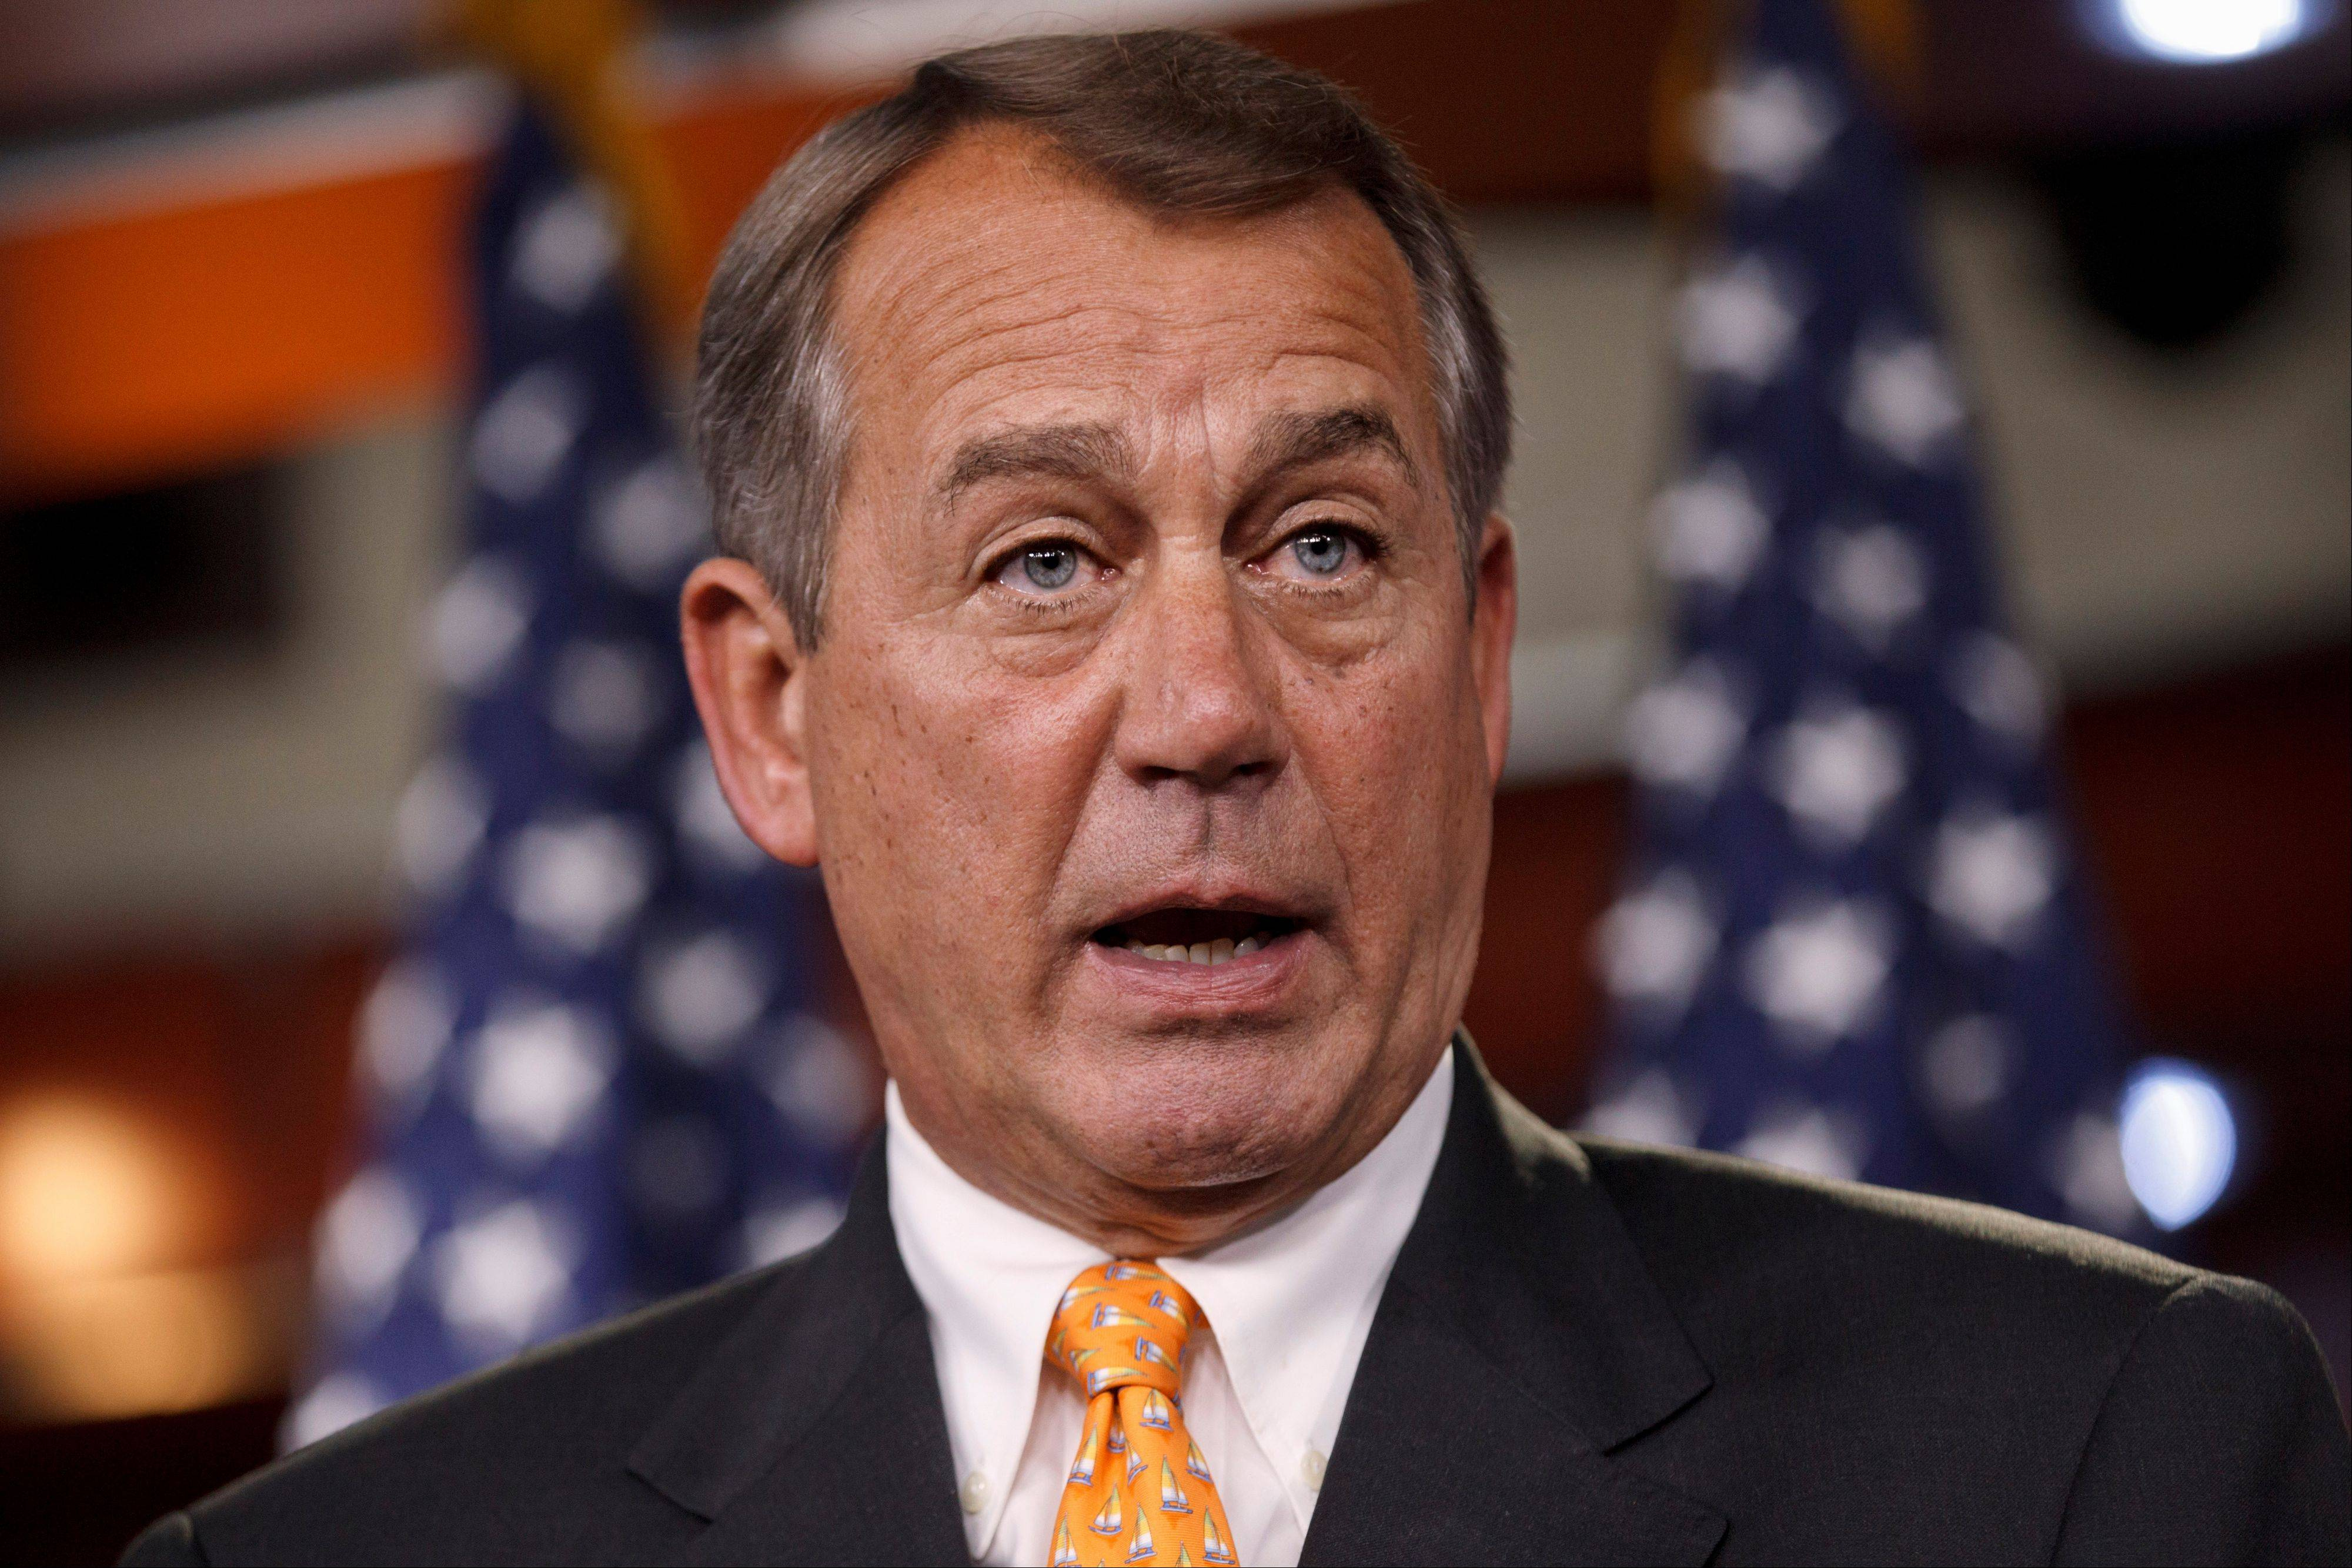 Speaker John Boehner said Wednesday that the House will not hold formal, compromise talks on the Senate-passed comprehensive immigration bill, a fresh signal from the Republican leadership that the issue is dead for the year.